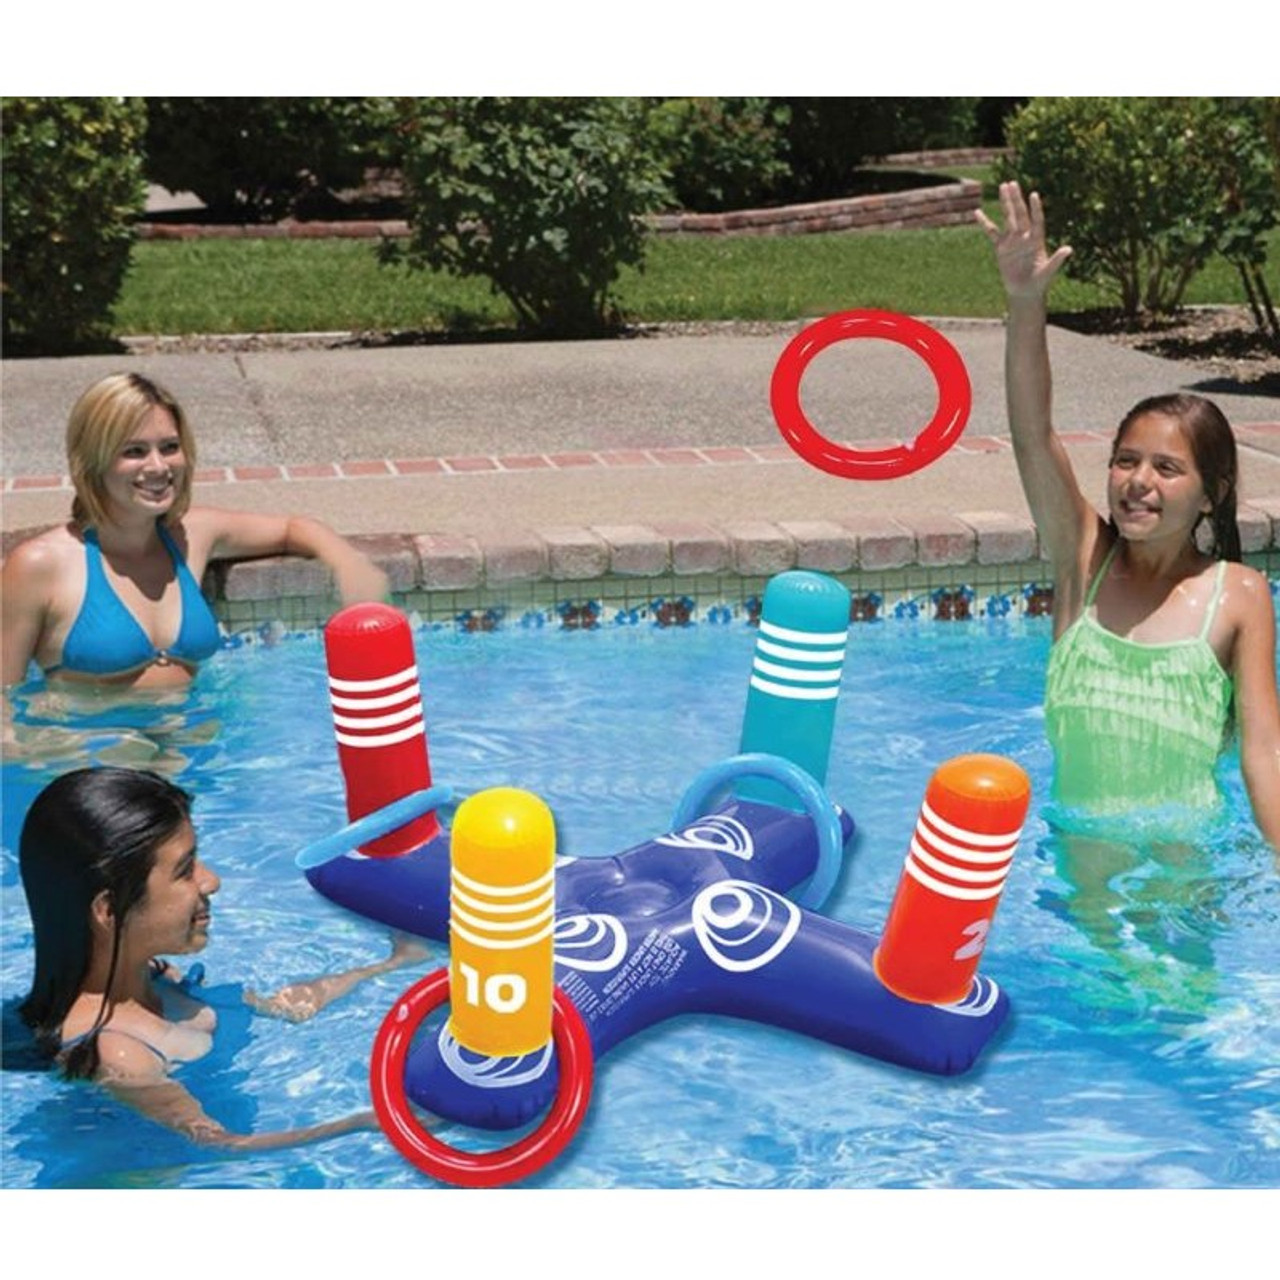 Multiplayer Pool Game Inflatable Pool Ring with 4 Pool Rings